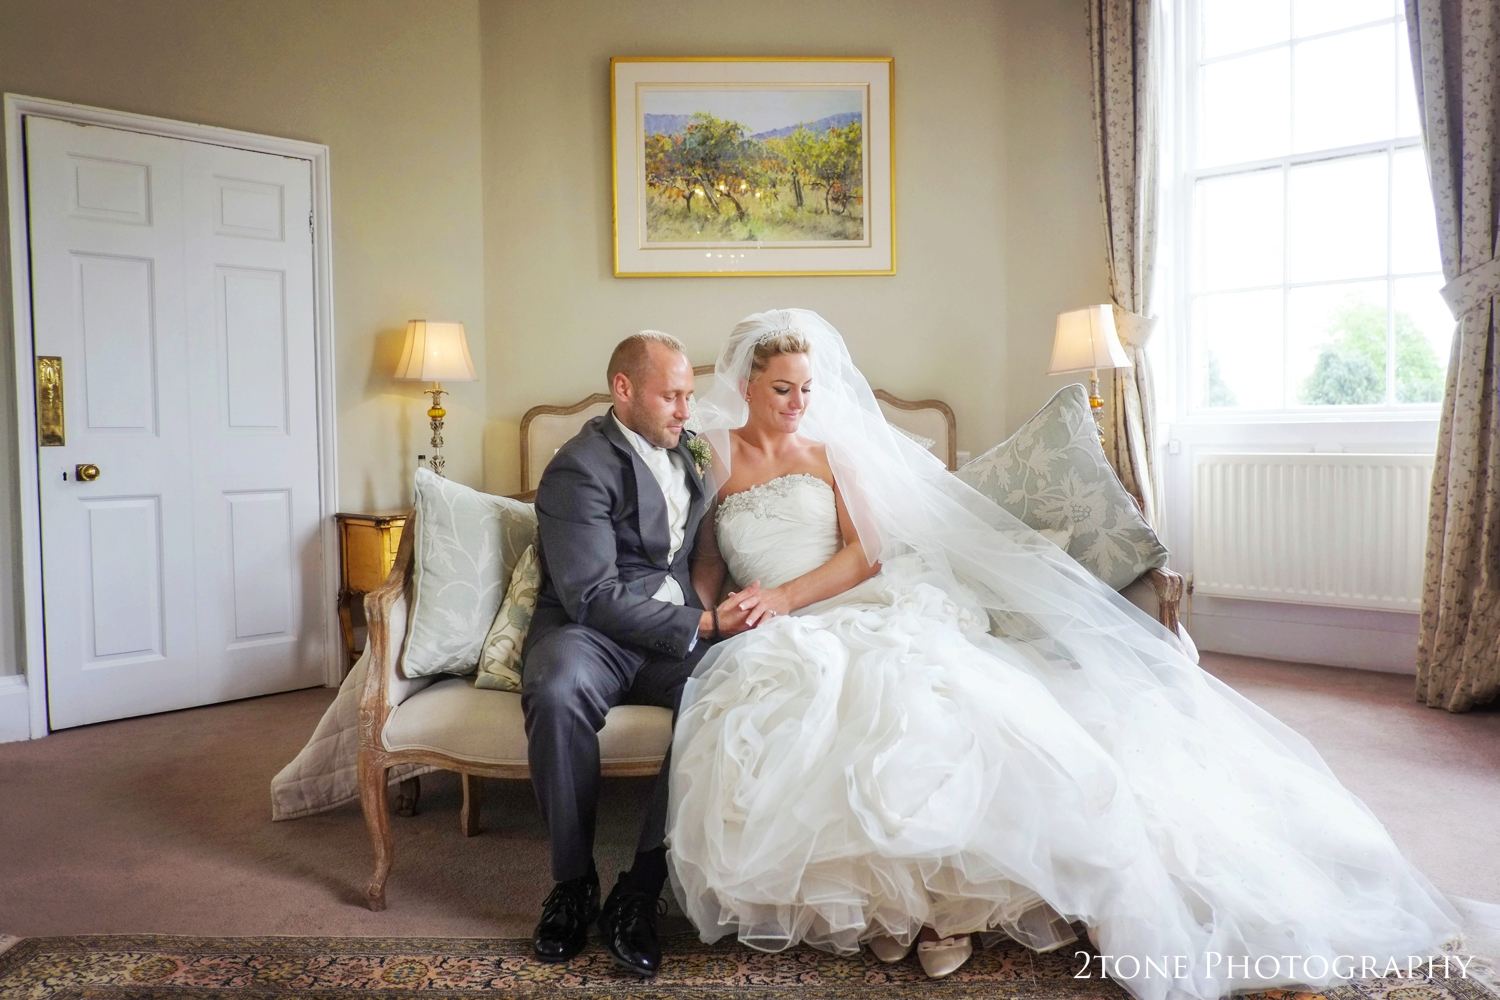 Sarah and Christian asked us both to share a few quiet moments with them in their bridal suite to capture them both relaxing in the beautiful room.